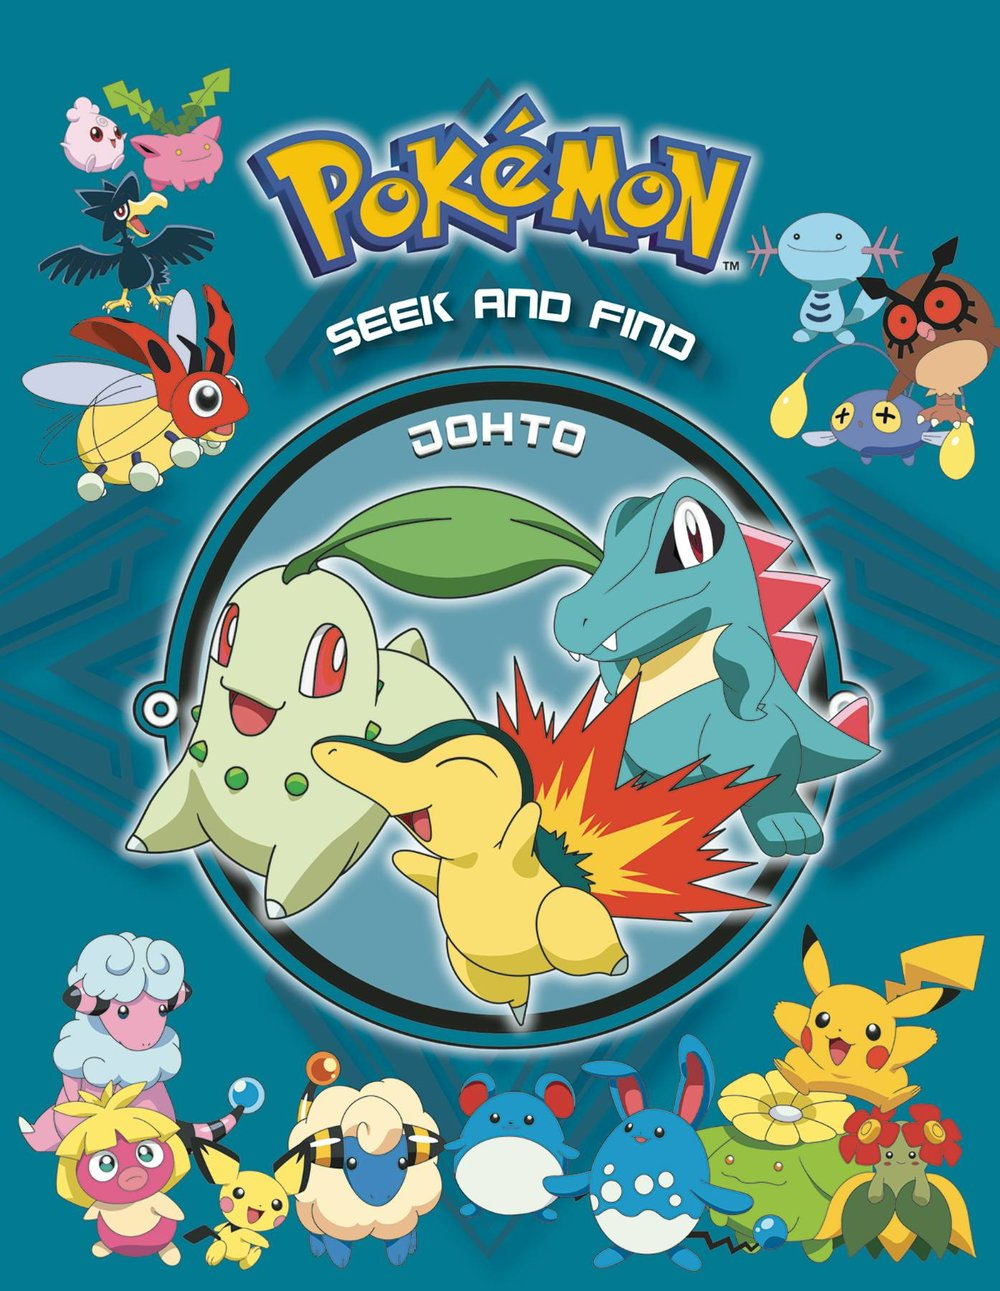 POKEMON SEEK _ FIND HC JOHTO.jpg